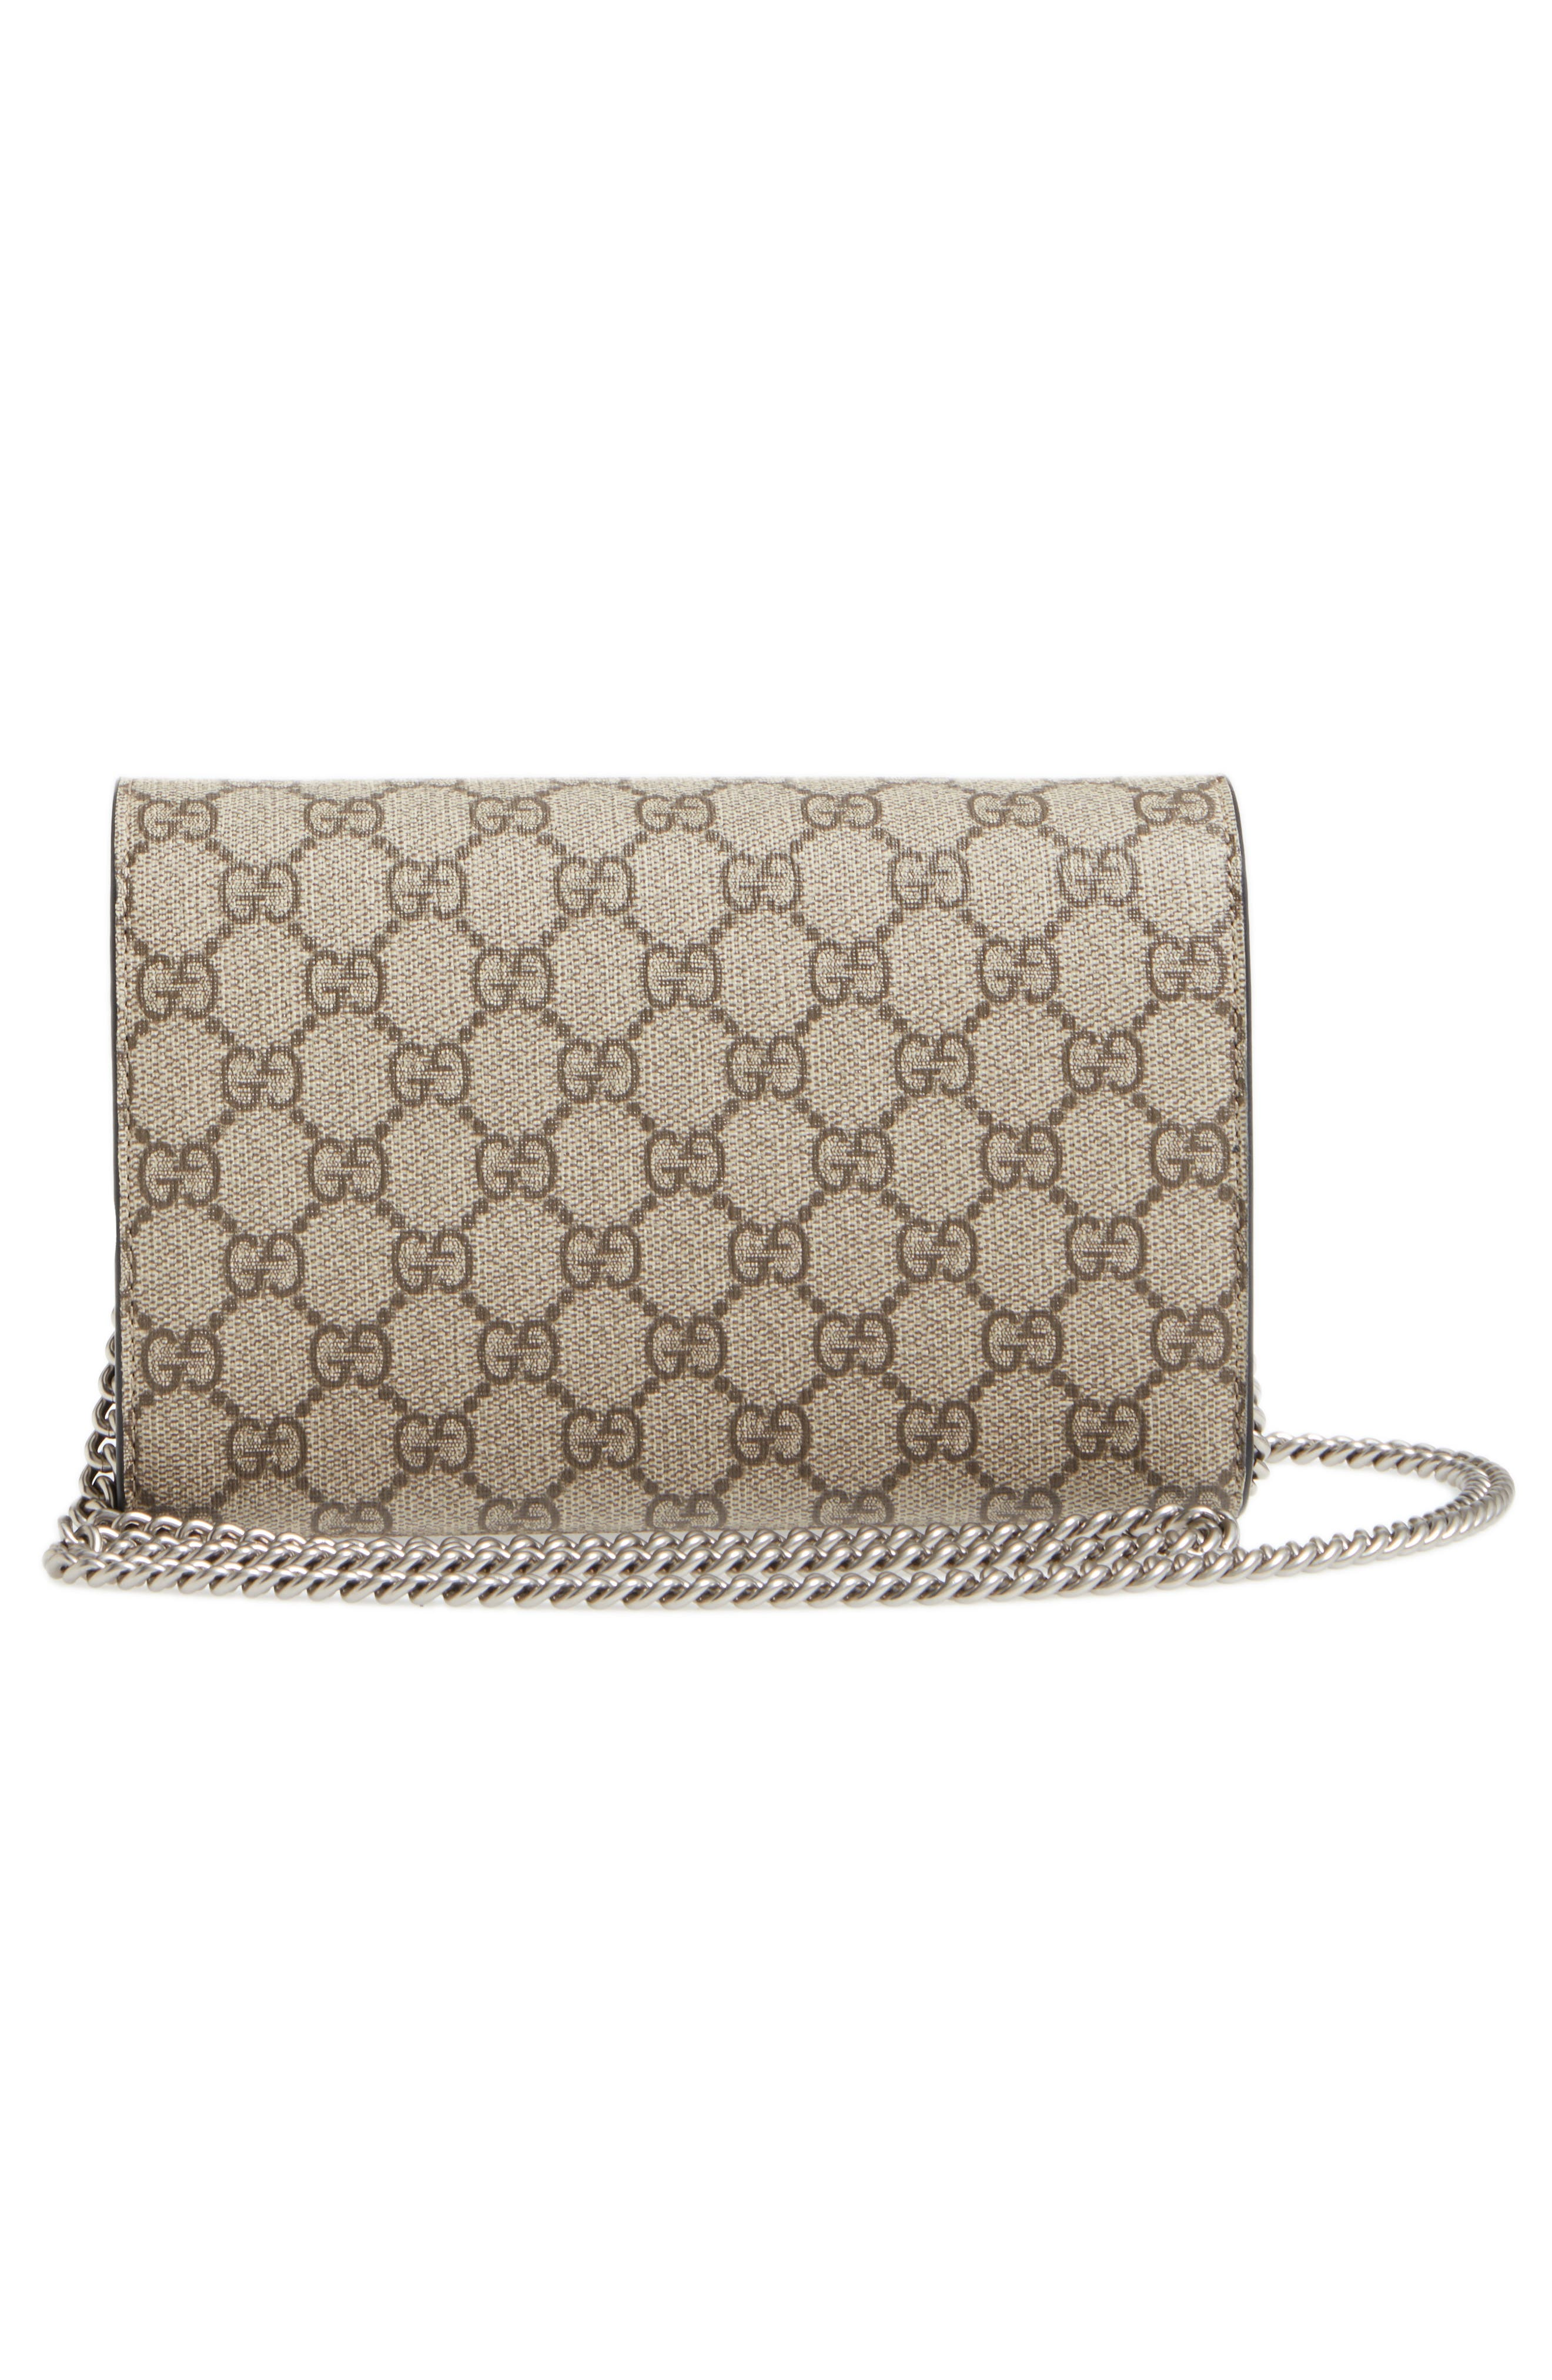 Dionysus GG Supreme Canvas Wallet on a Chain,                             Alternate thumbnail 3, color,                             Beige Ebony/Nero